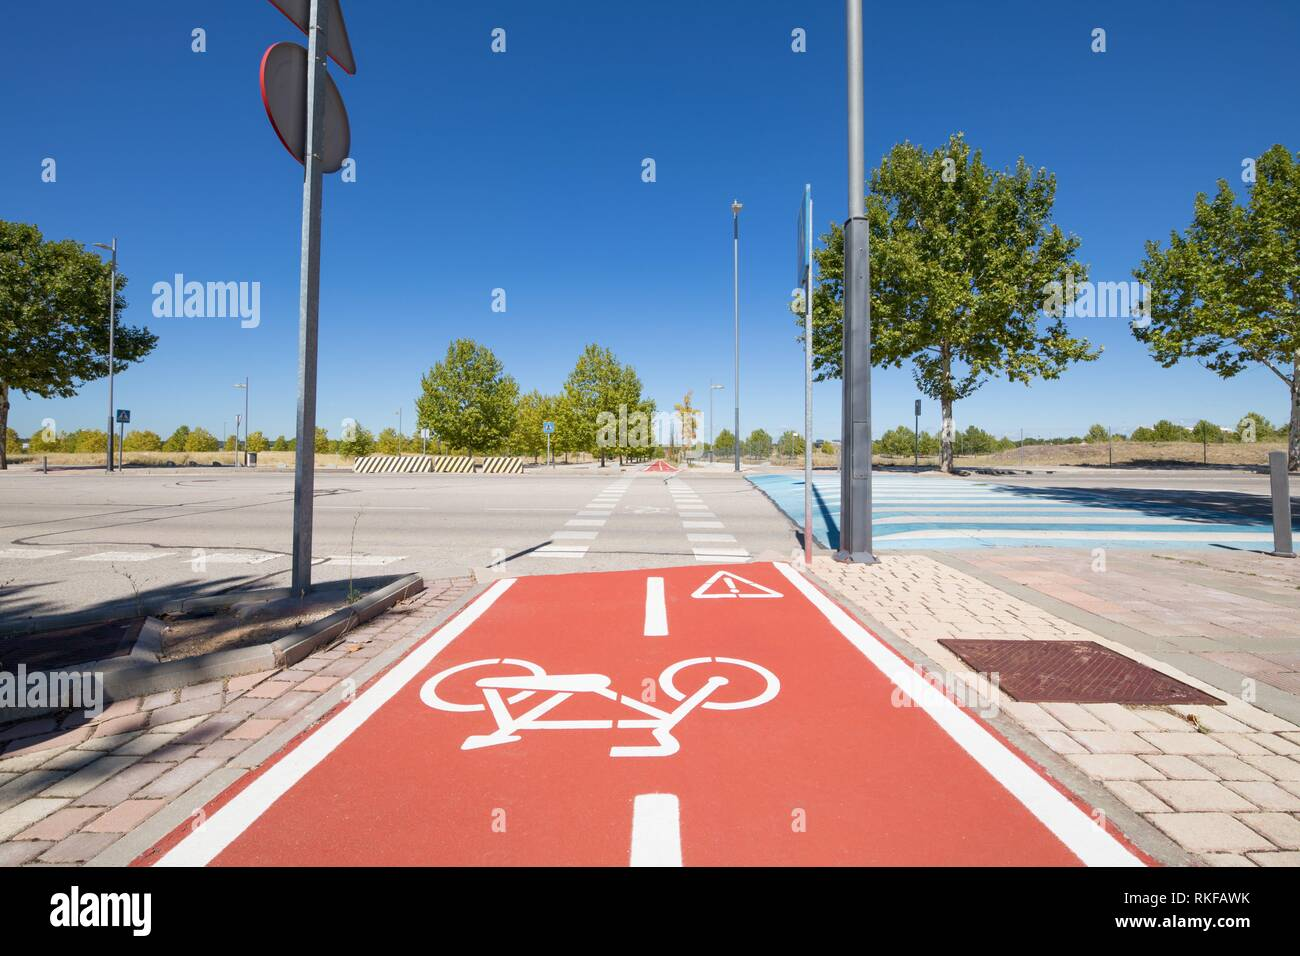 bike double red lane, with cycle symbol, and blue elevated crosswalk in urban street in Valdeluz town, near Guadalajara city, Spain, Europe. - Stock Image